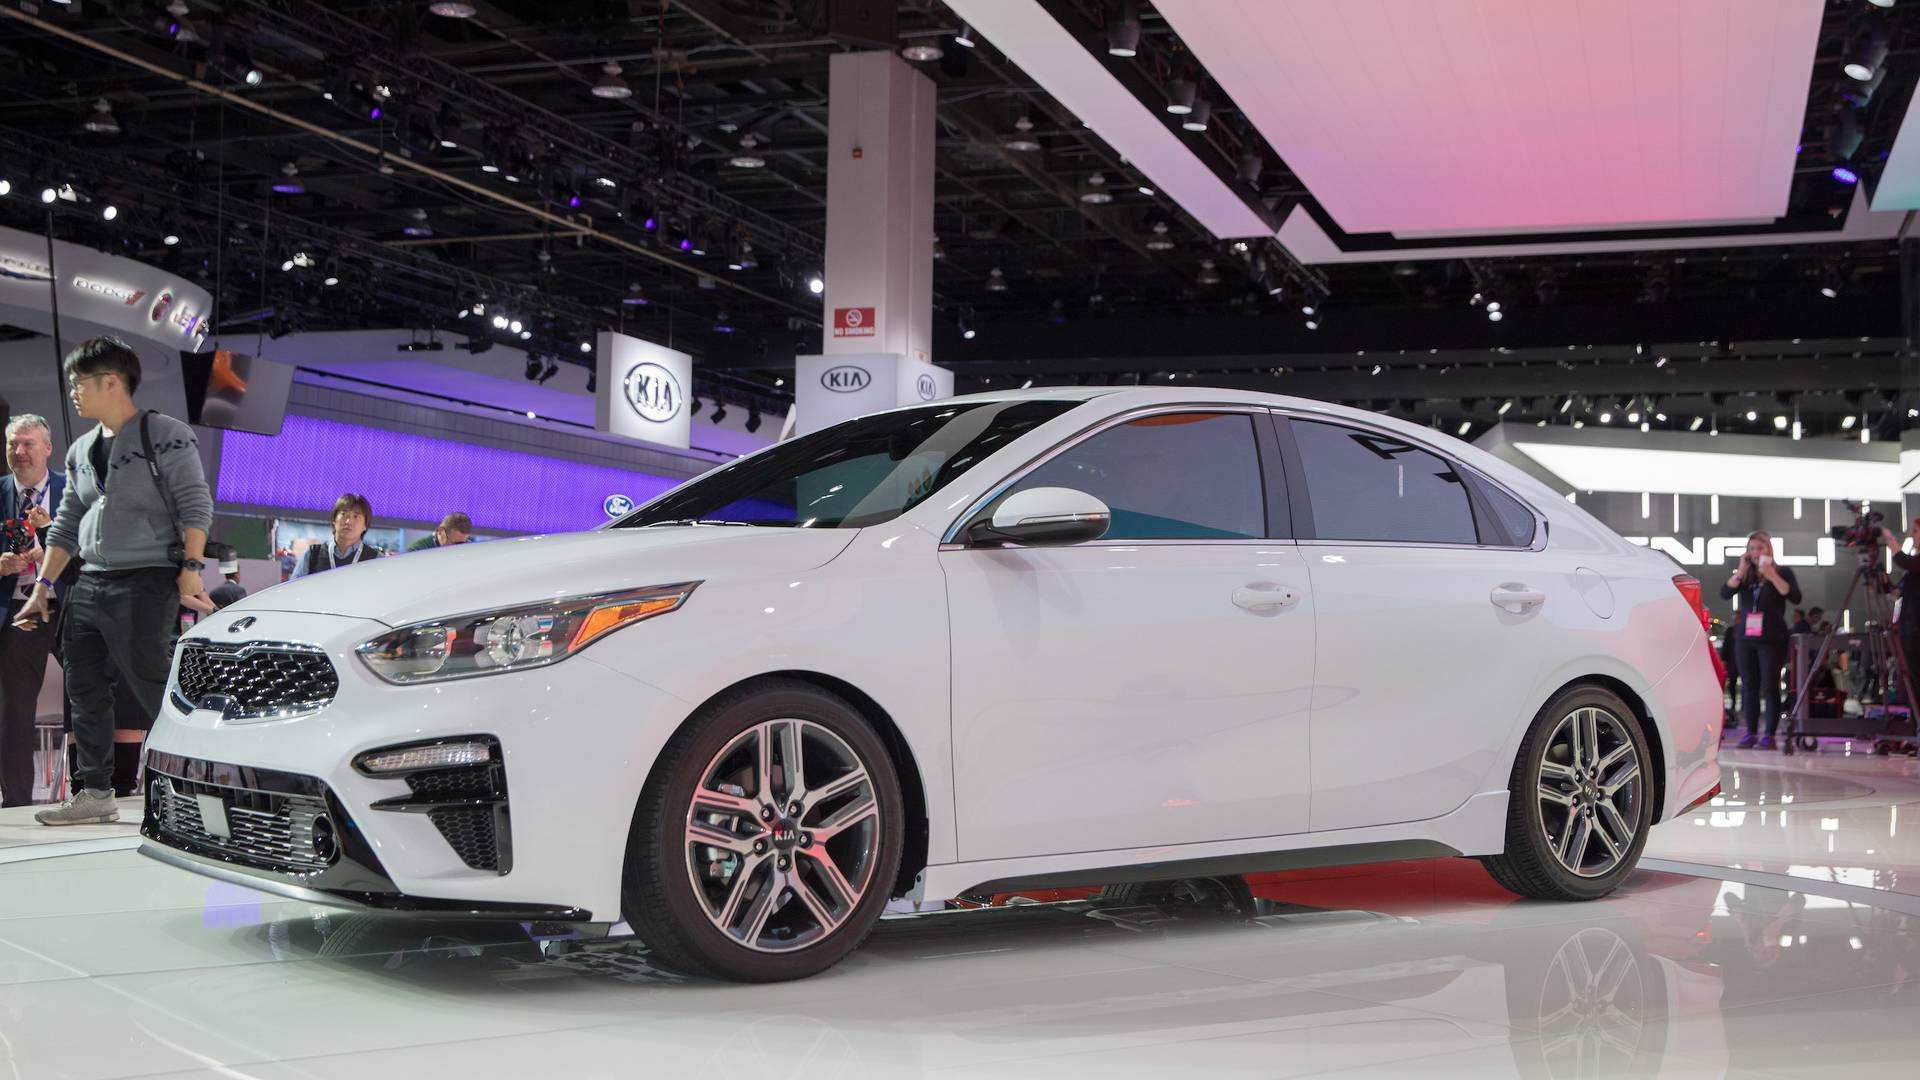 65 New Kia Forte Koup 2019 New Review by Kia Forte Koup 2019